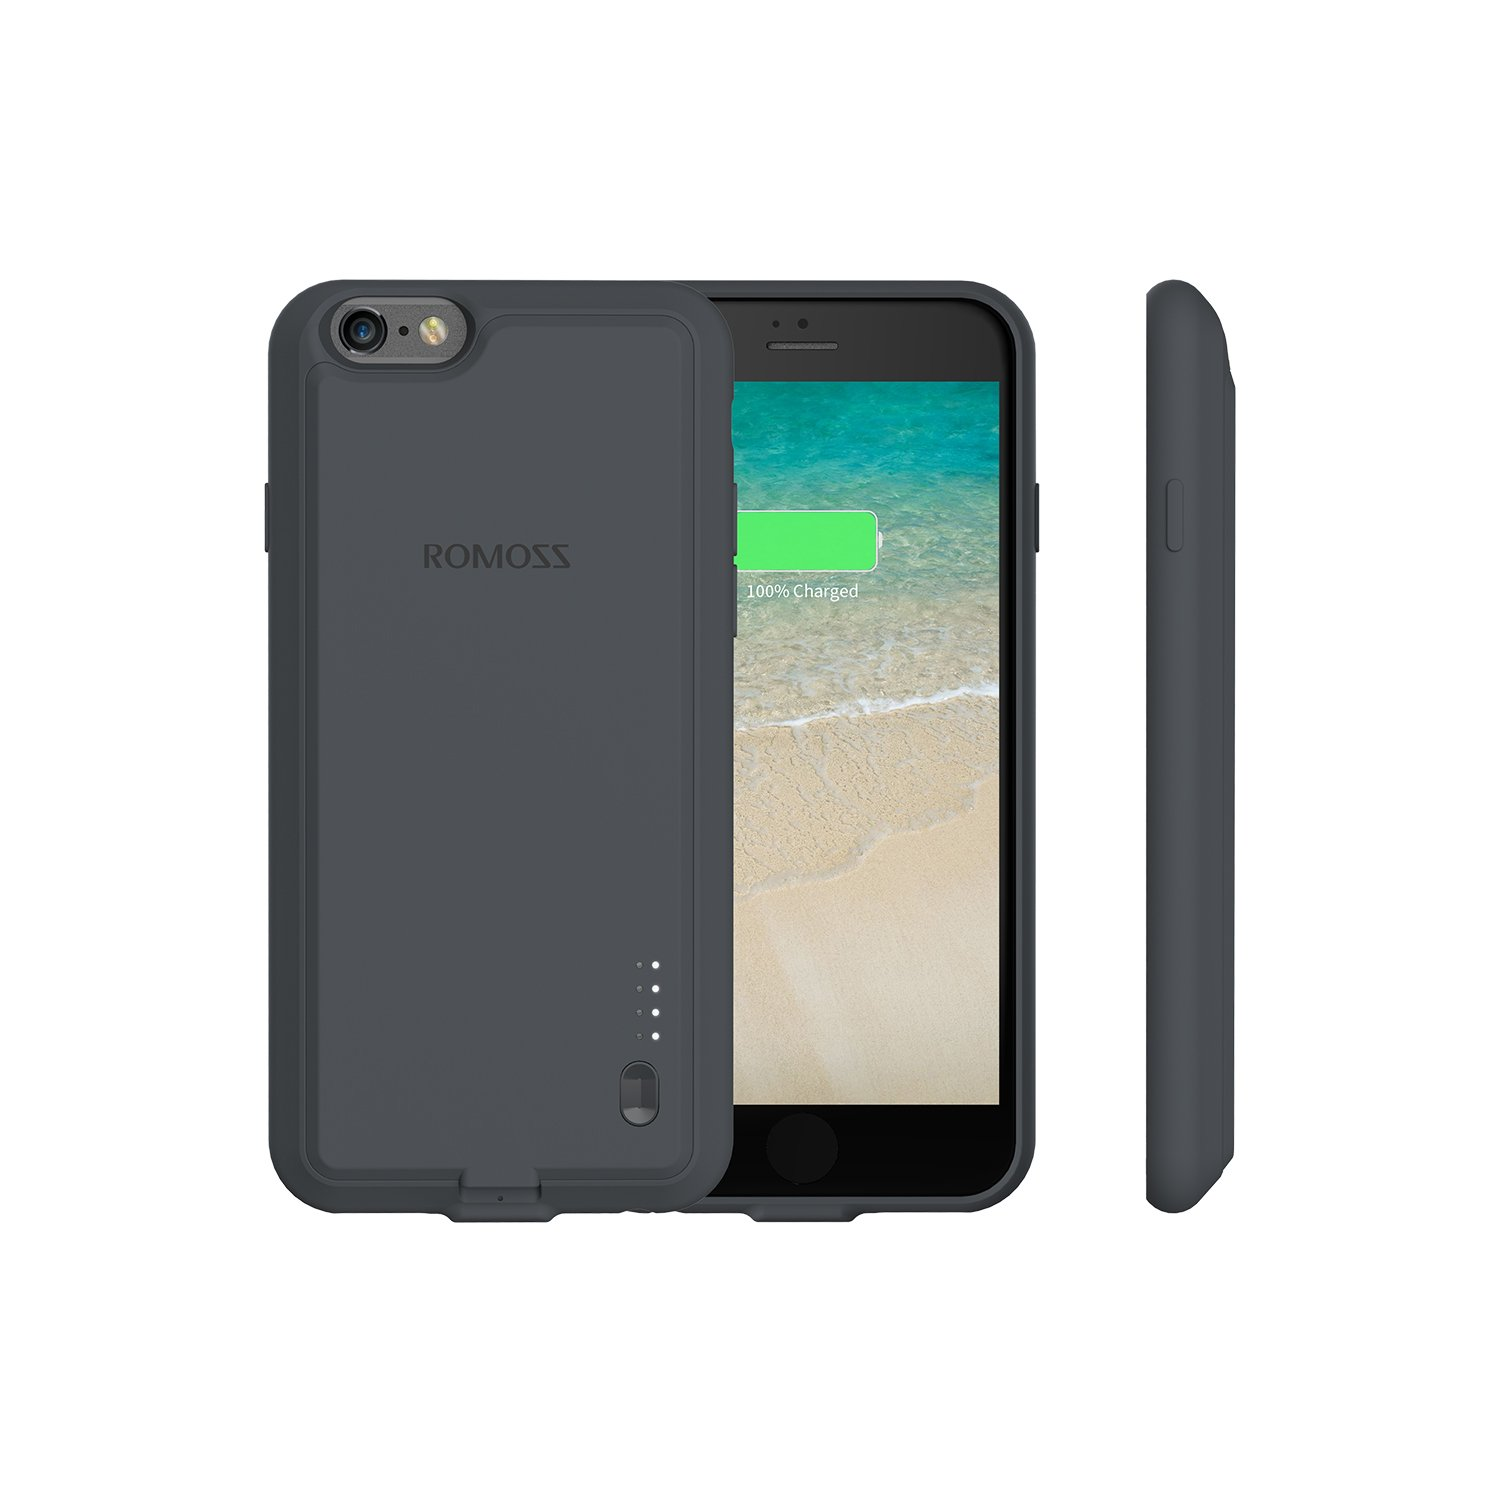 iPhone 6 Plus / 6s Plus Battery Case, ROMOSS Ultra Slim Extended Battery Case for iPhone 6 Plus / 6s Plus (5.5 inch) with 2800mAh Capacity - Gray